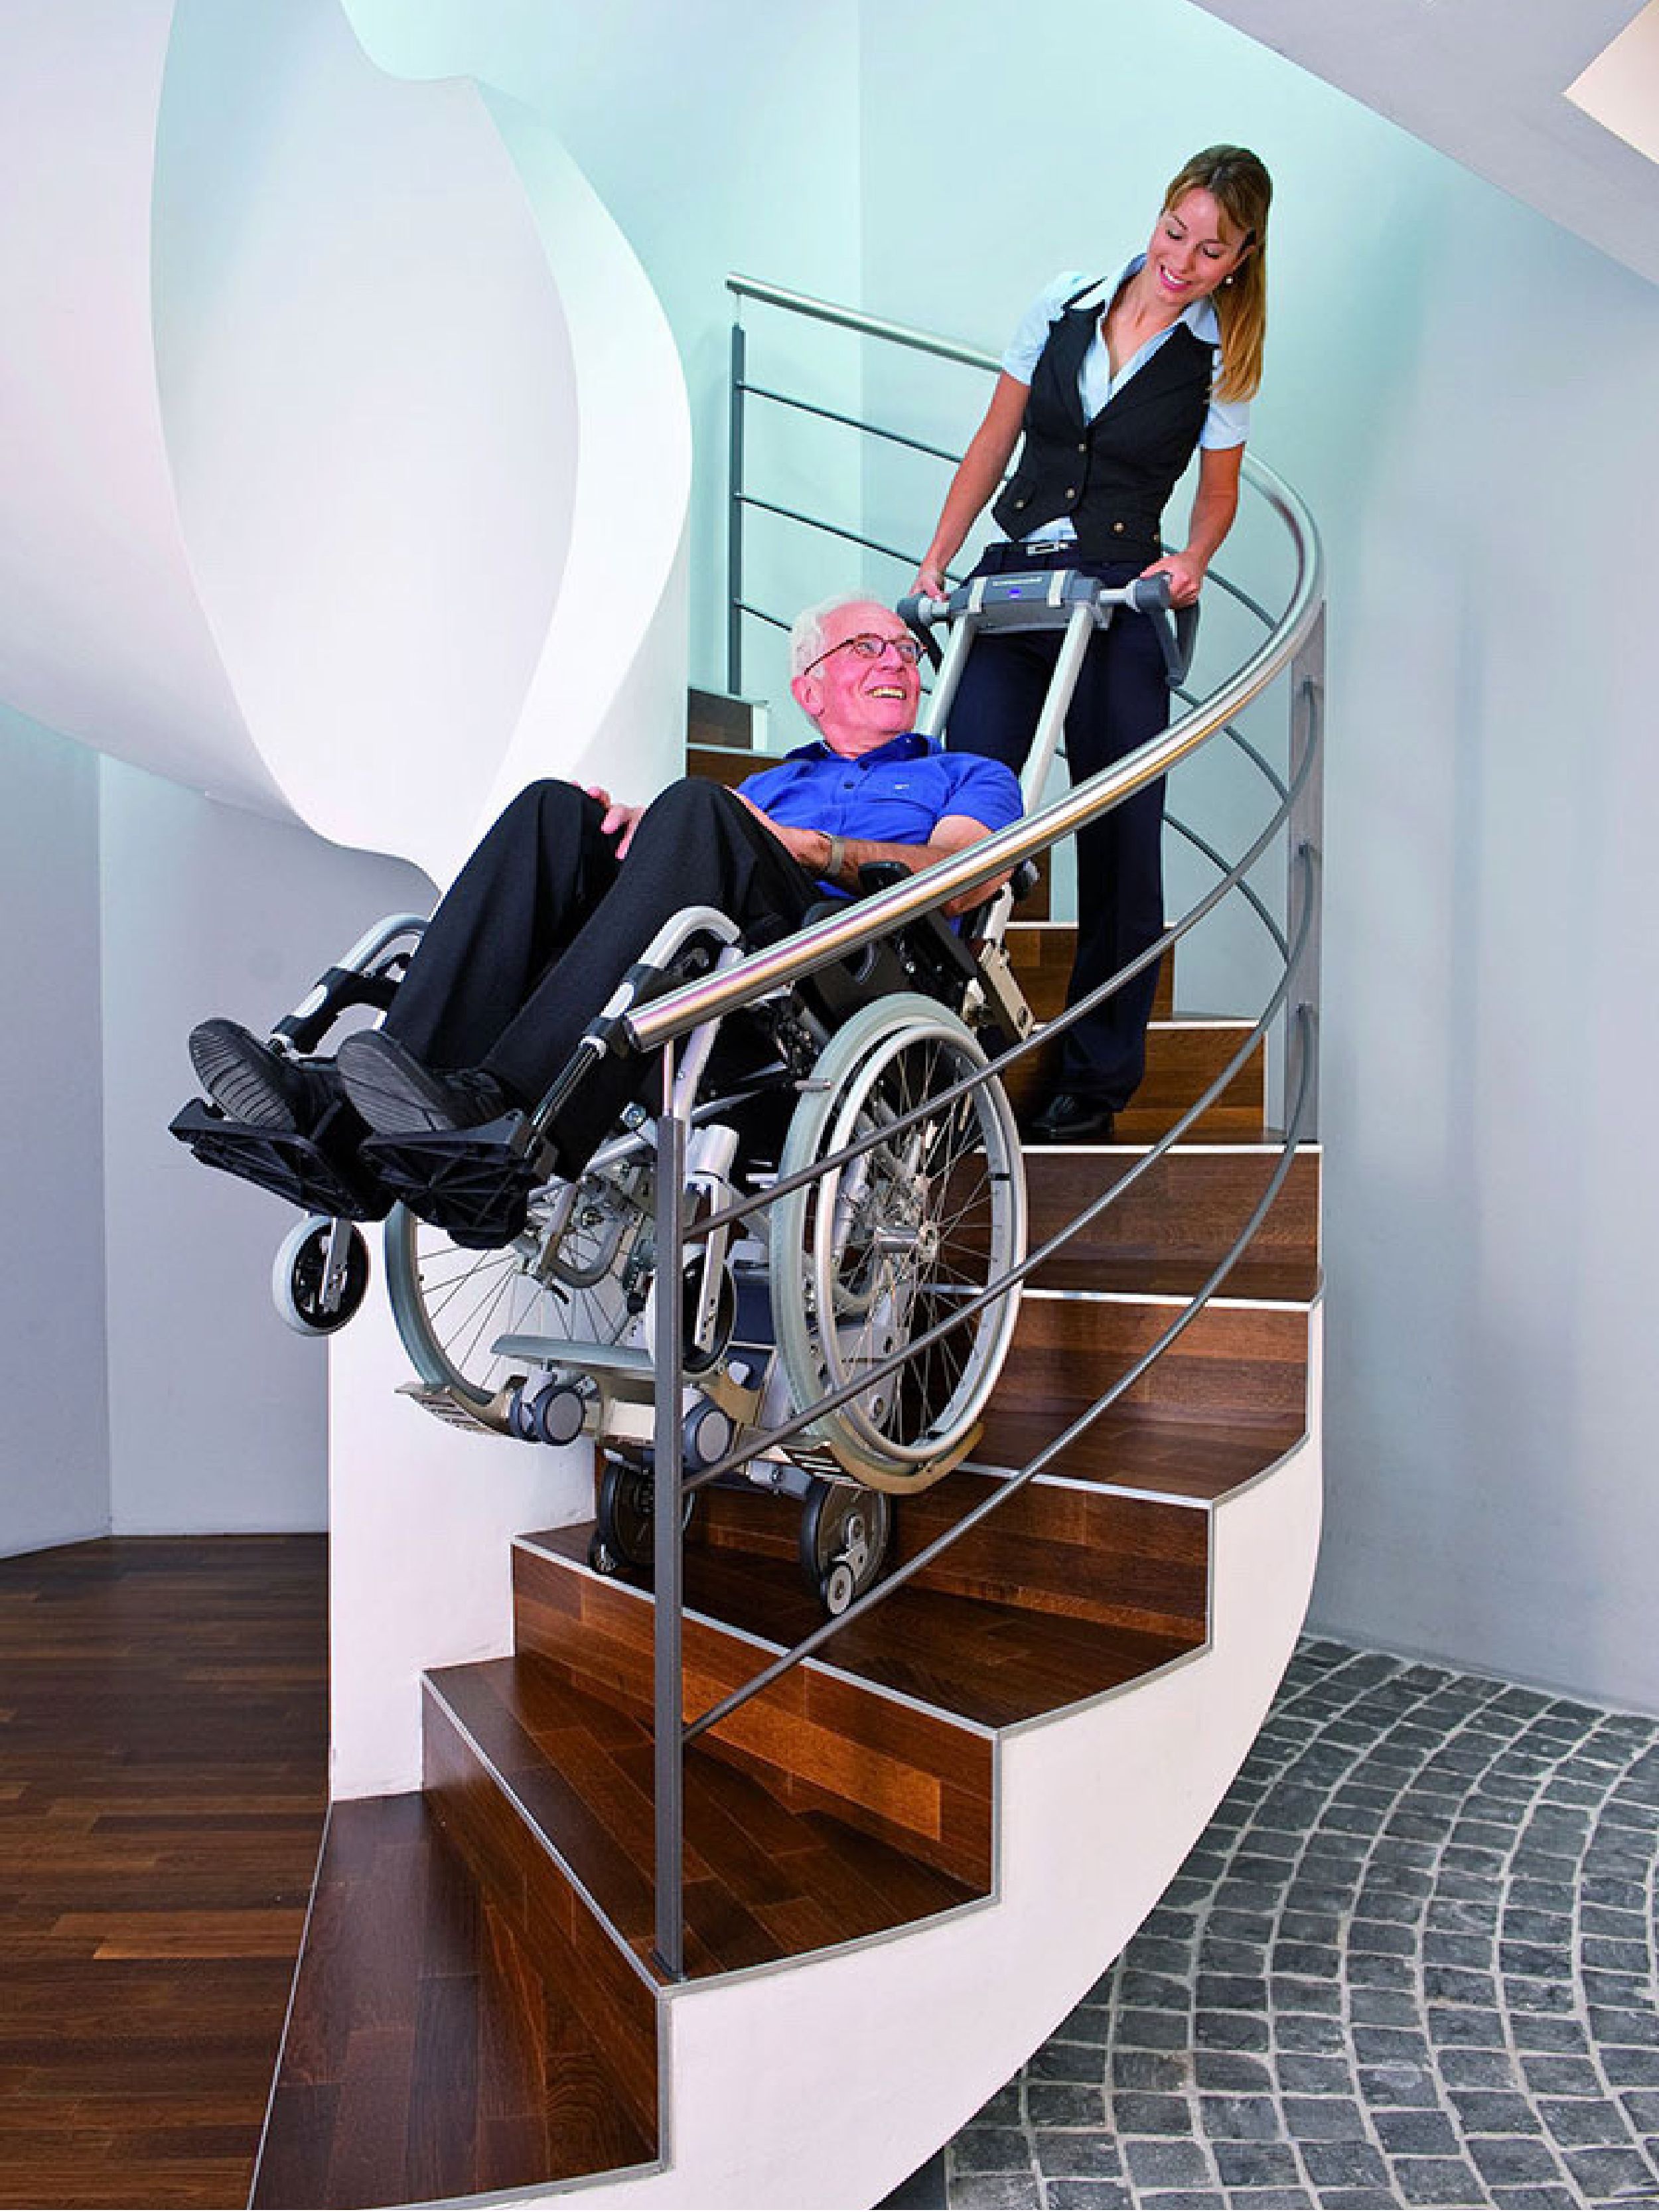 Scalamobil - For a spiral or radius staircase the Scalamobil is a great solution. Available in most of our showrooms.